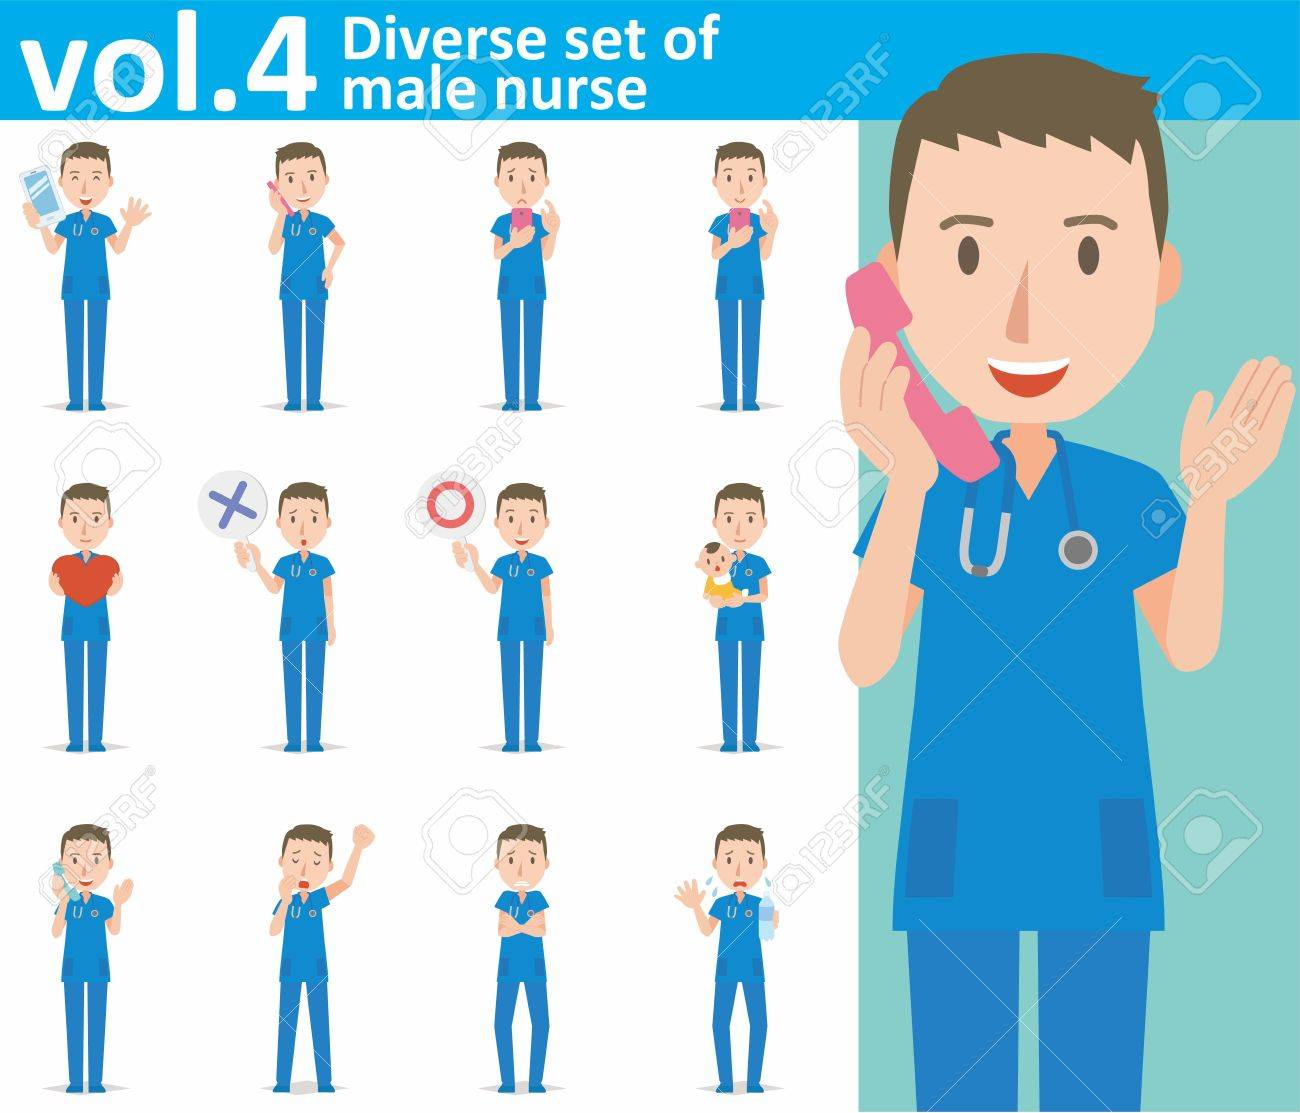 hight resolution of diverse set of male nurse on white background stock vector 62103294